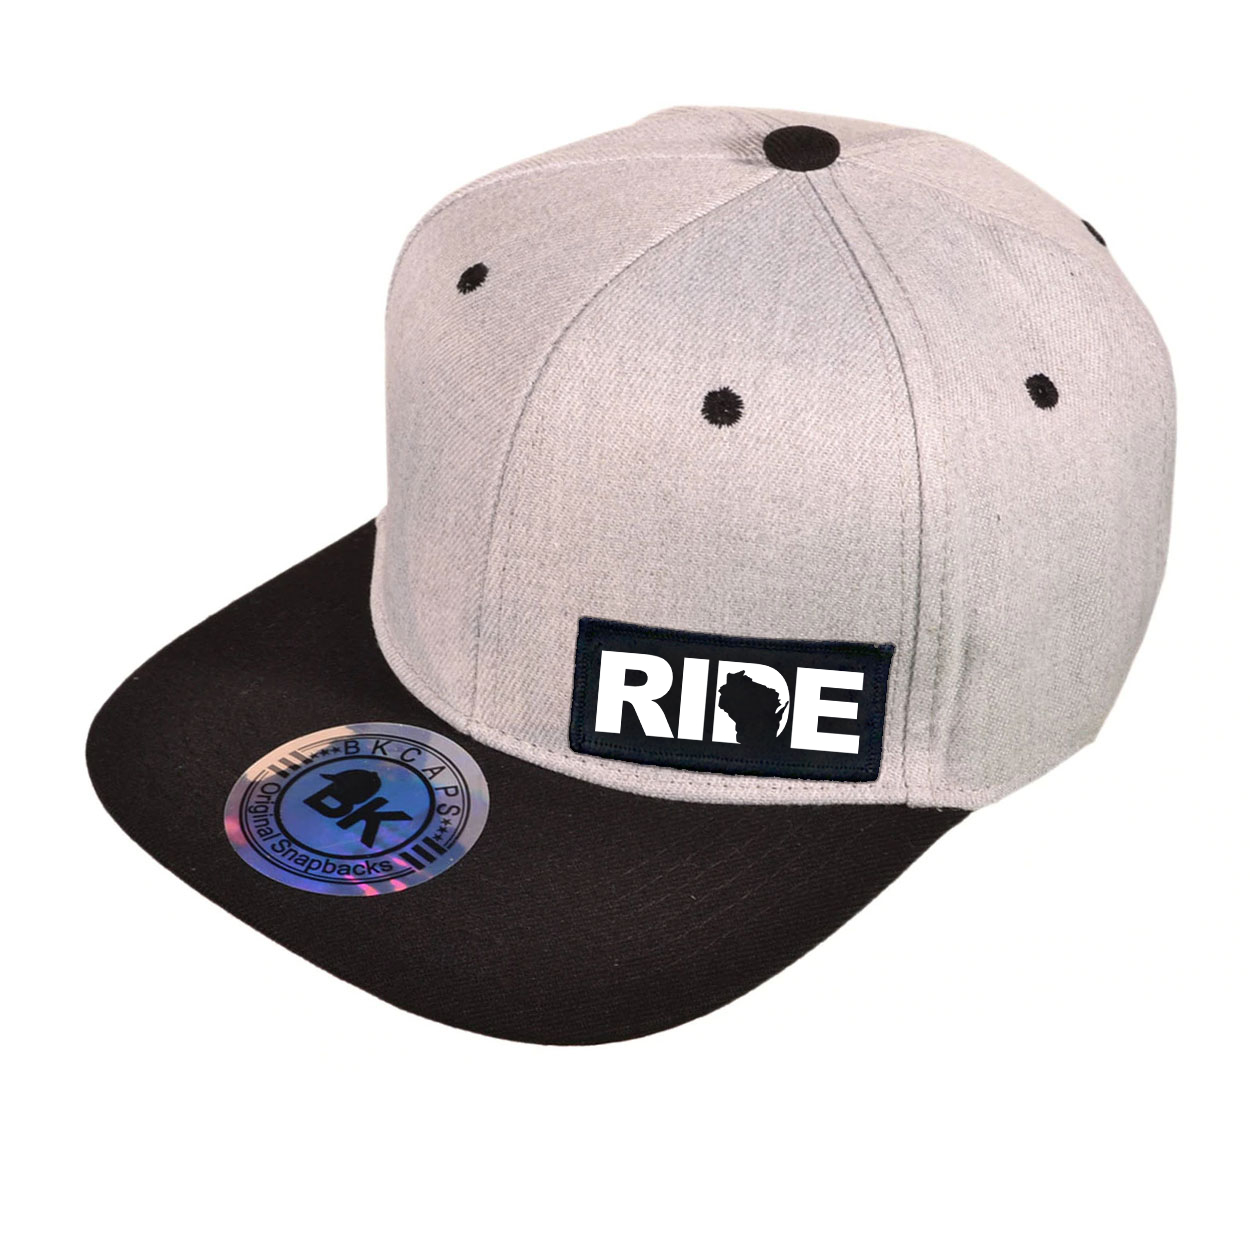 Ride Wisconsin Night Out Woven Patch Snapback Flat Brim Hat Heather Gray/Black (White Logo)